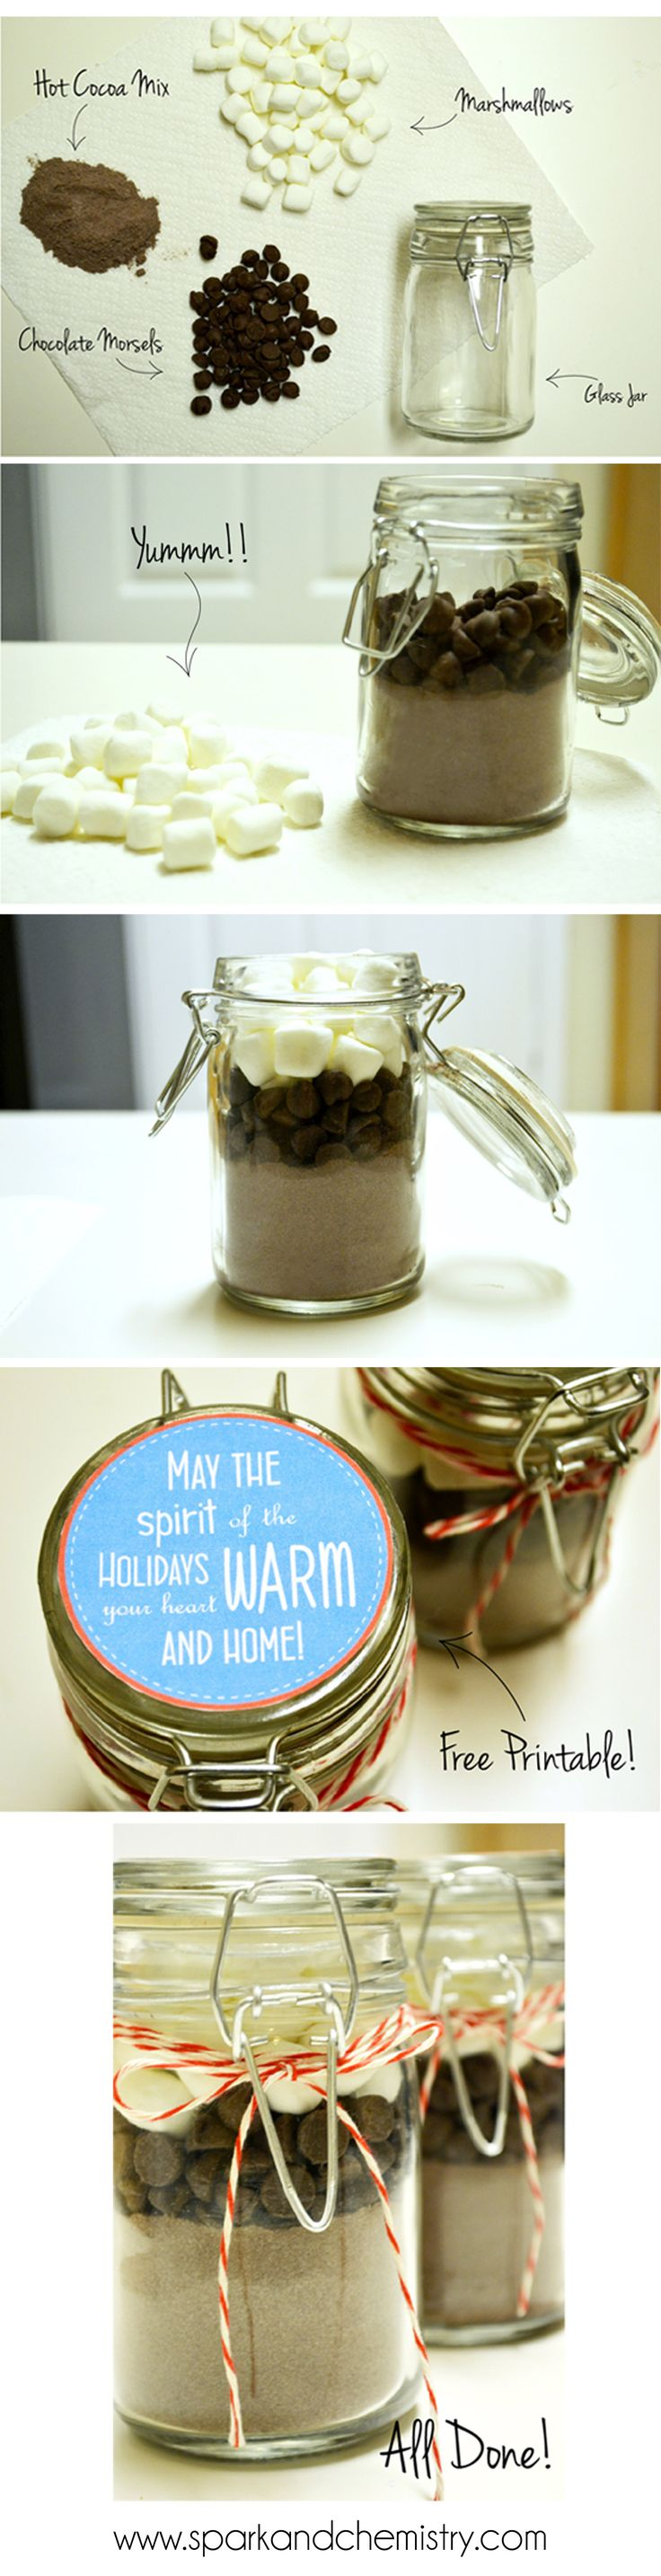 Hot Chocolate in a Jar gift